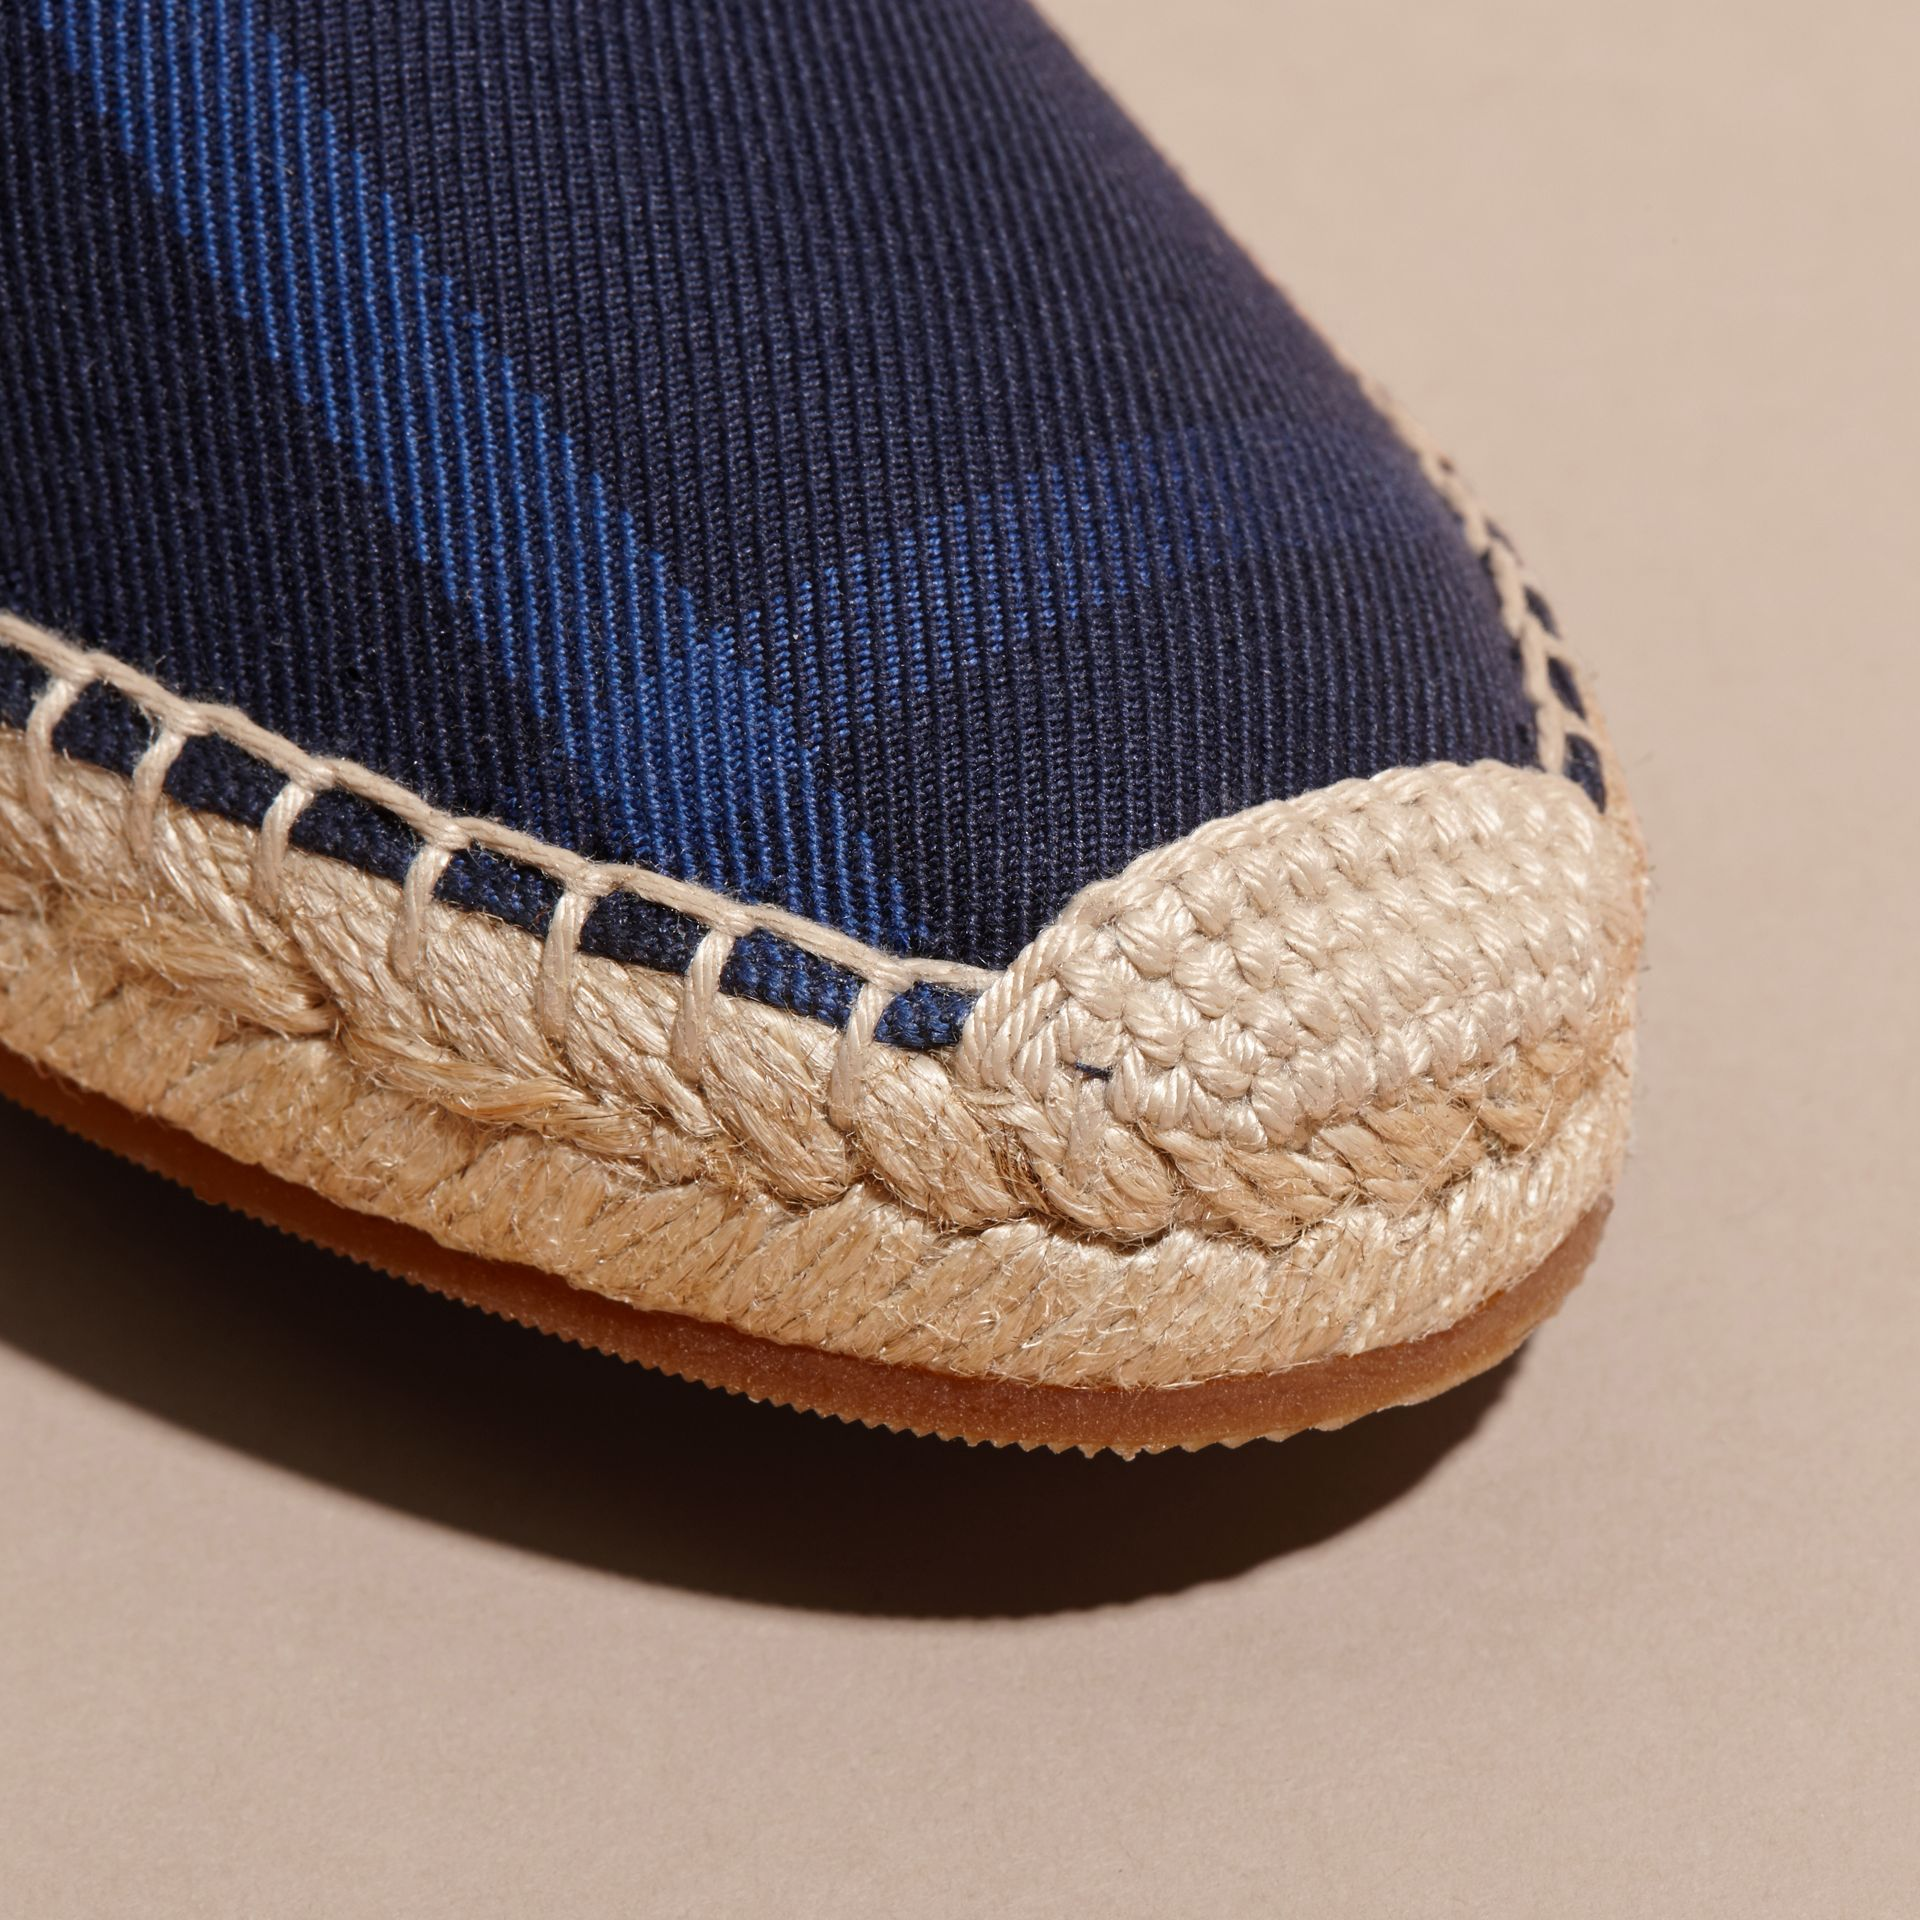 Leather Trim Canvas Check Espadrilles Indigo Blue - gallery image 2